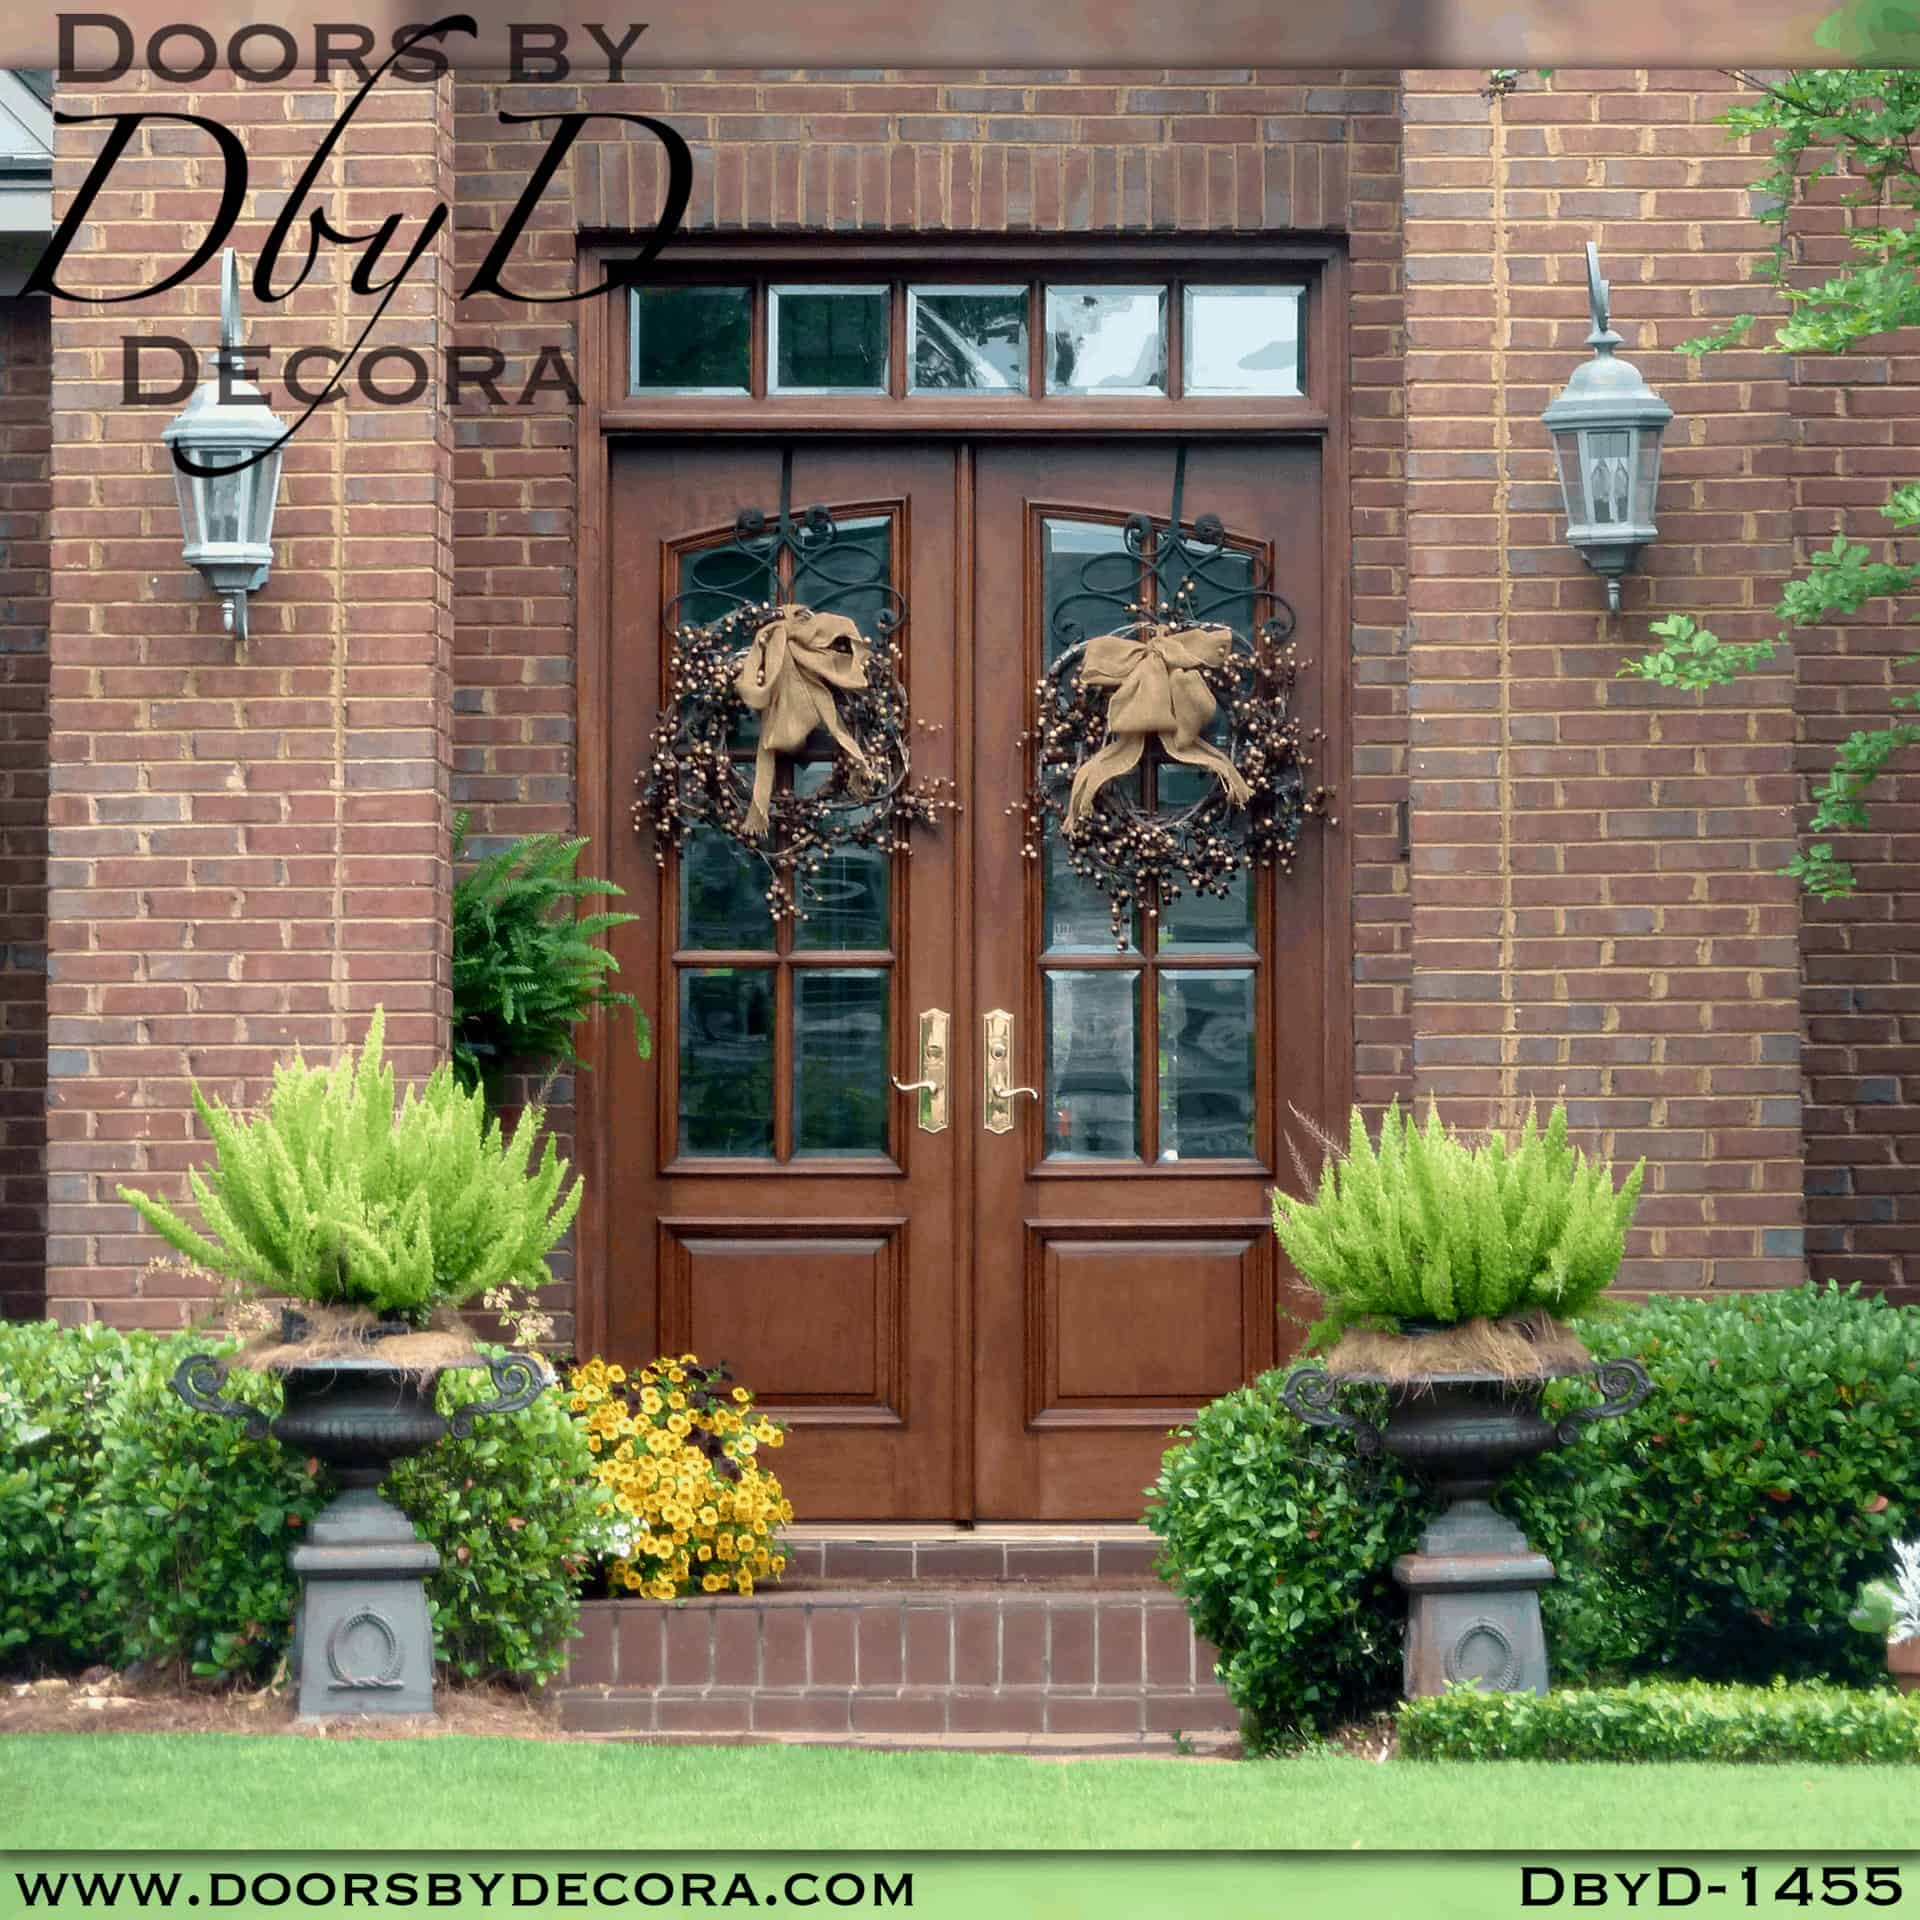 Doors by Decora Estate Collection Custom Wood Double Entry Doors 6-Lite transom windows